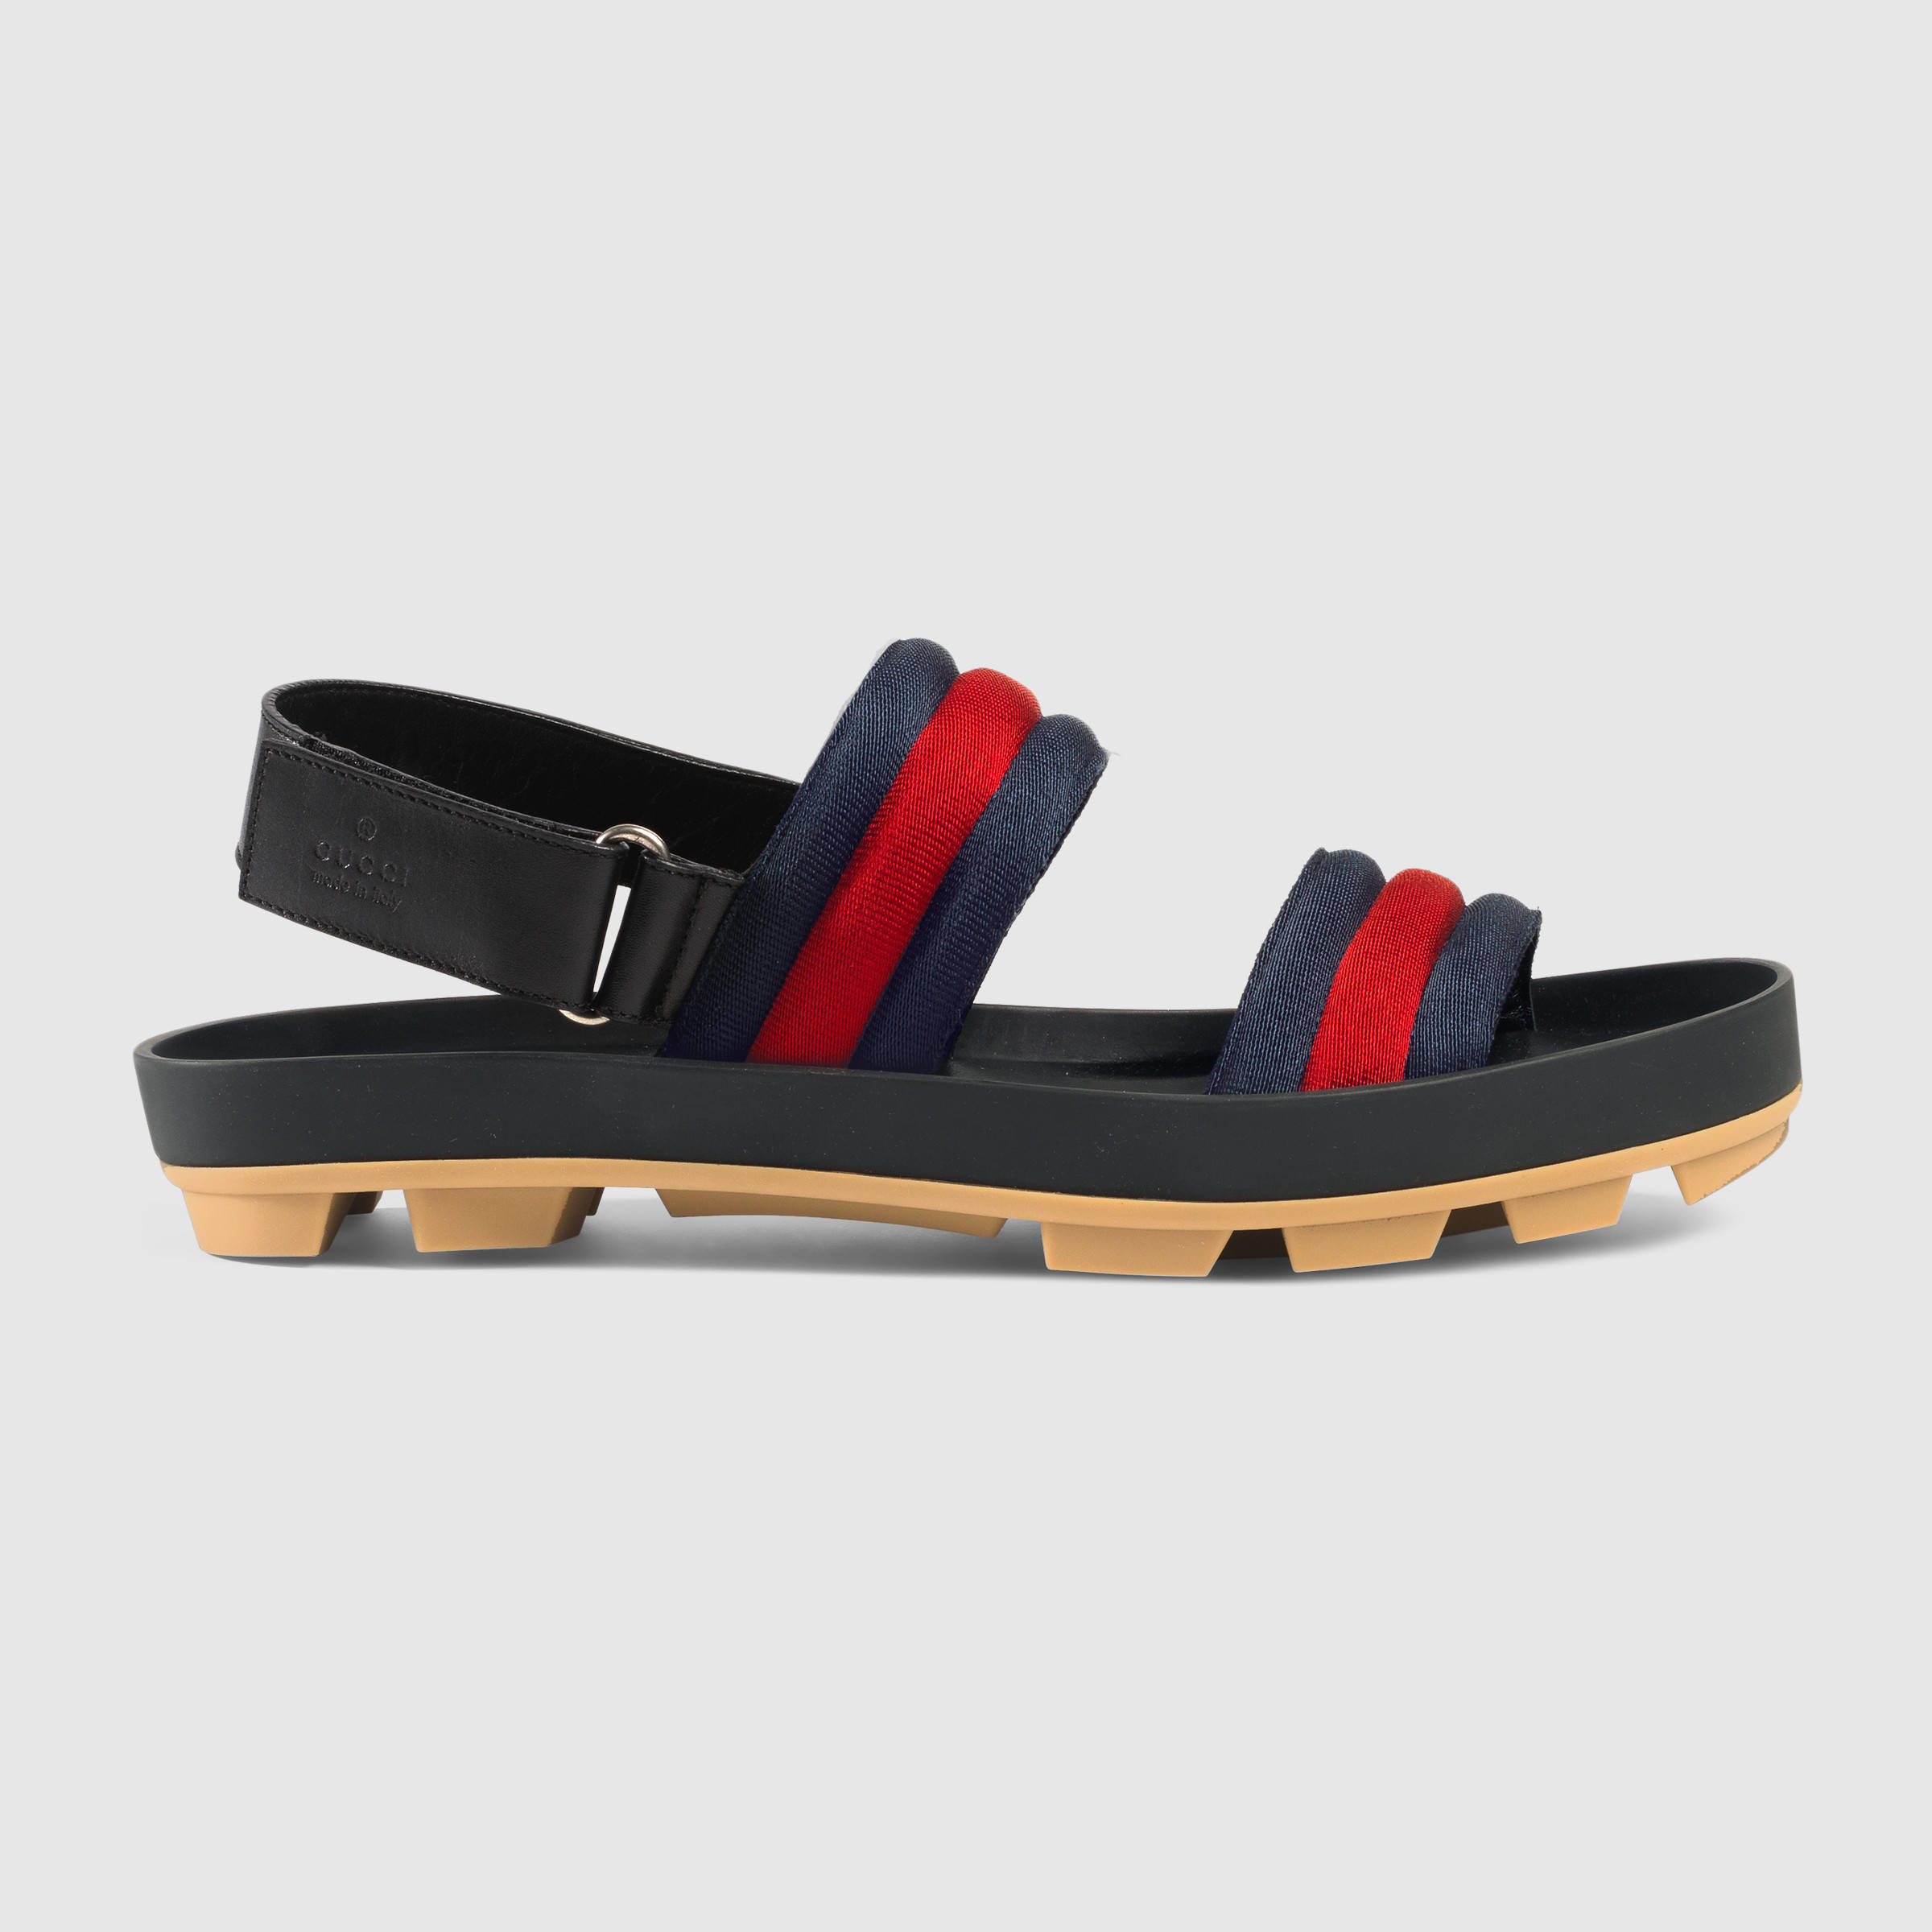 87f34a5aa0519 Lyst - Gucci Leather And Web Sandal for Men